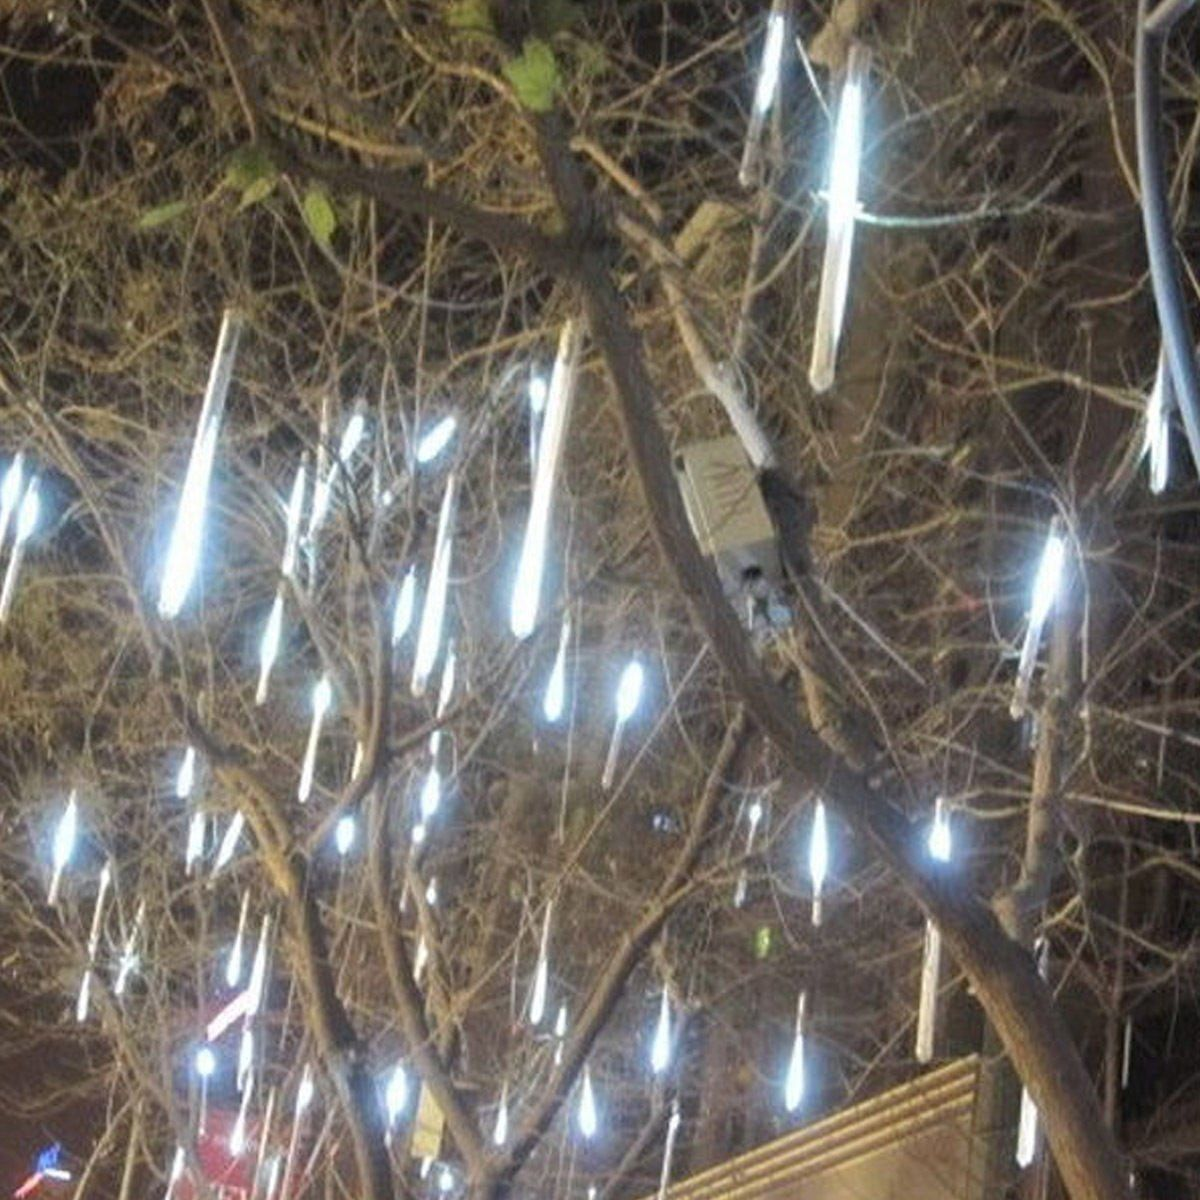 Wedding decorations trees with lights  cm cm  LED Light Meteor Shower Falling Rain Drop Snow Fall